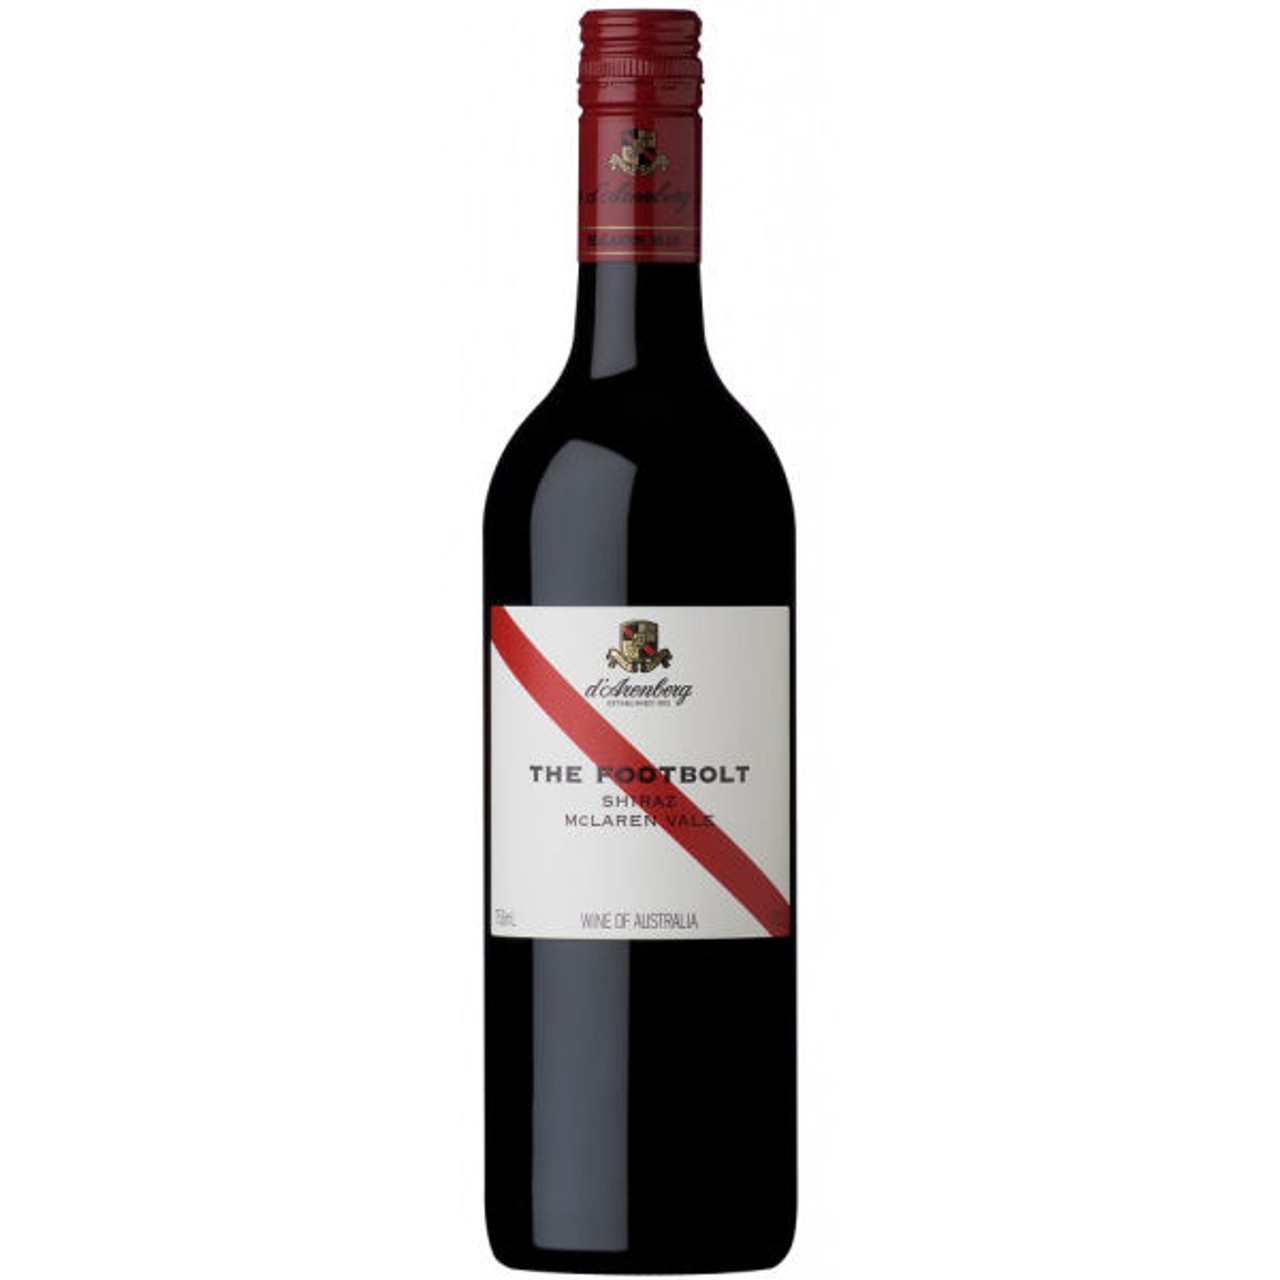 d'Arenberg McLaren Vale The Footbolt Shiraz